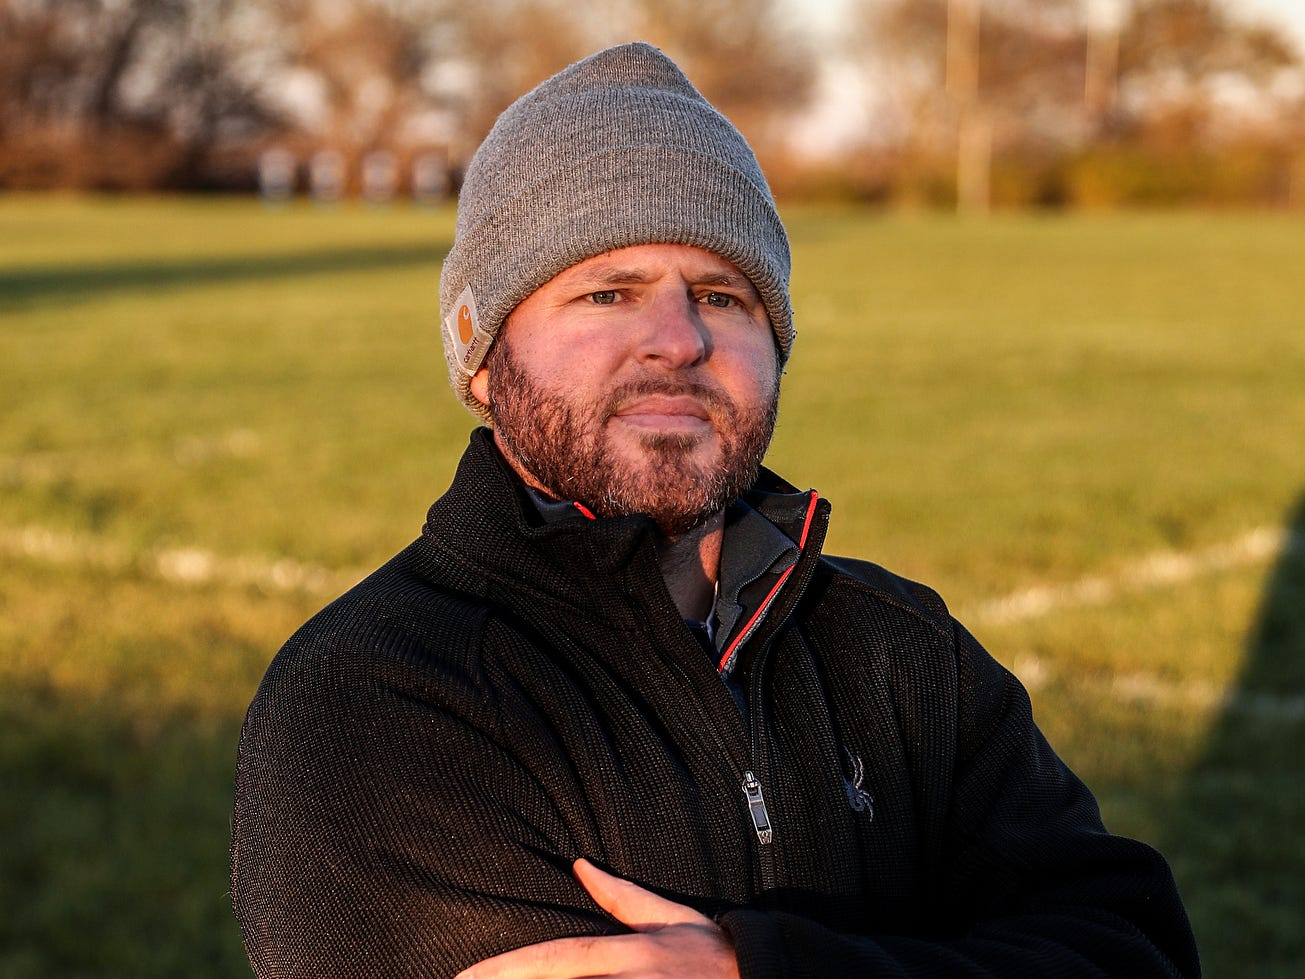 Head coach Justin Pelley, son of former Speedway coach and Indiana Hall-of-Famer Denny Pelley, seen at Western Boone Junior-Senior High School in Thornton, Ind., Wednesday, Nov. 7, 2018. His father Denny is a defensive coach for the team.